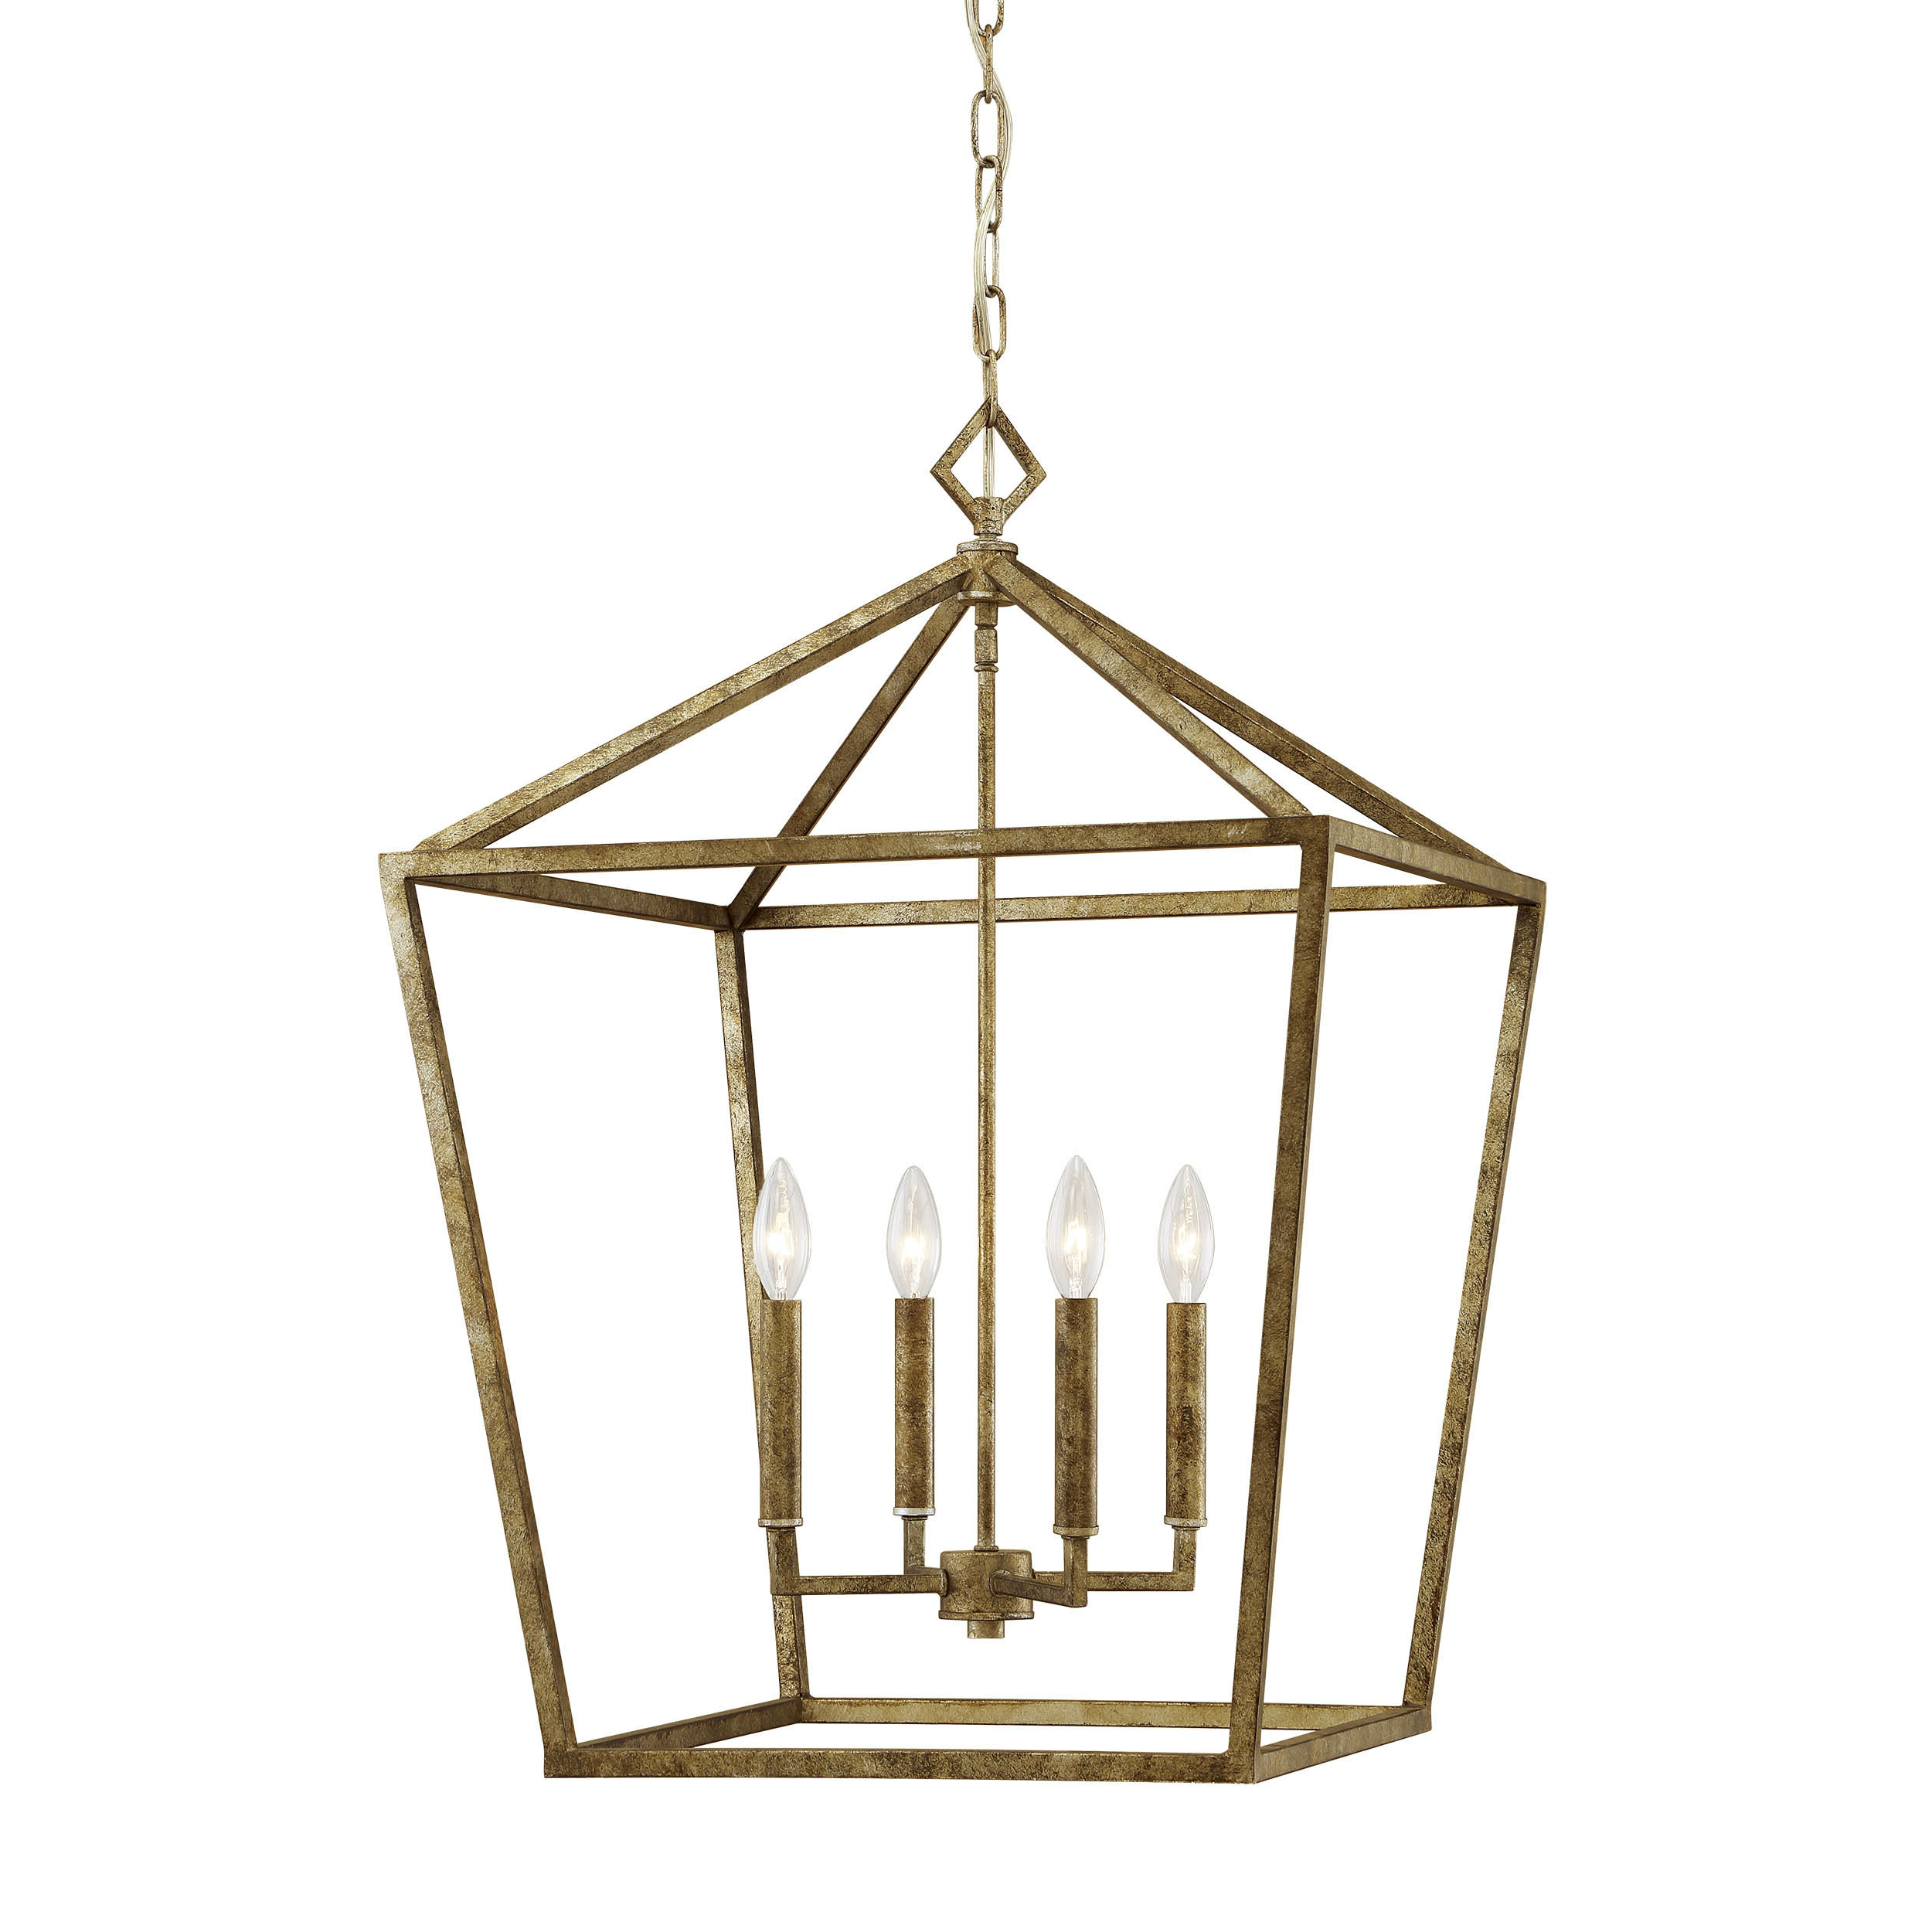 Most Recently Released Taya 4 Light Lantern Square Pendants For Foyer White & Cream Pendant Lighting You'll Love In  (View 14 of 25)